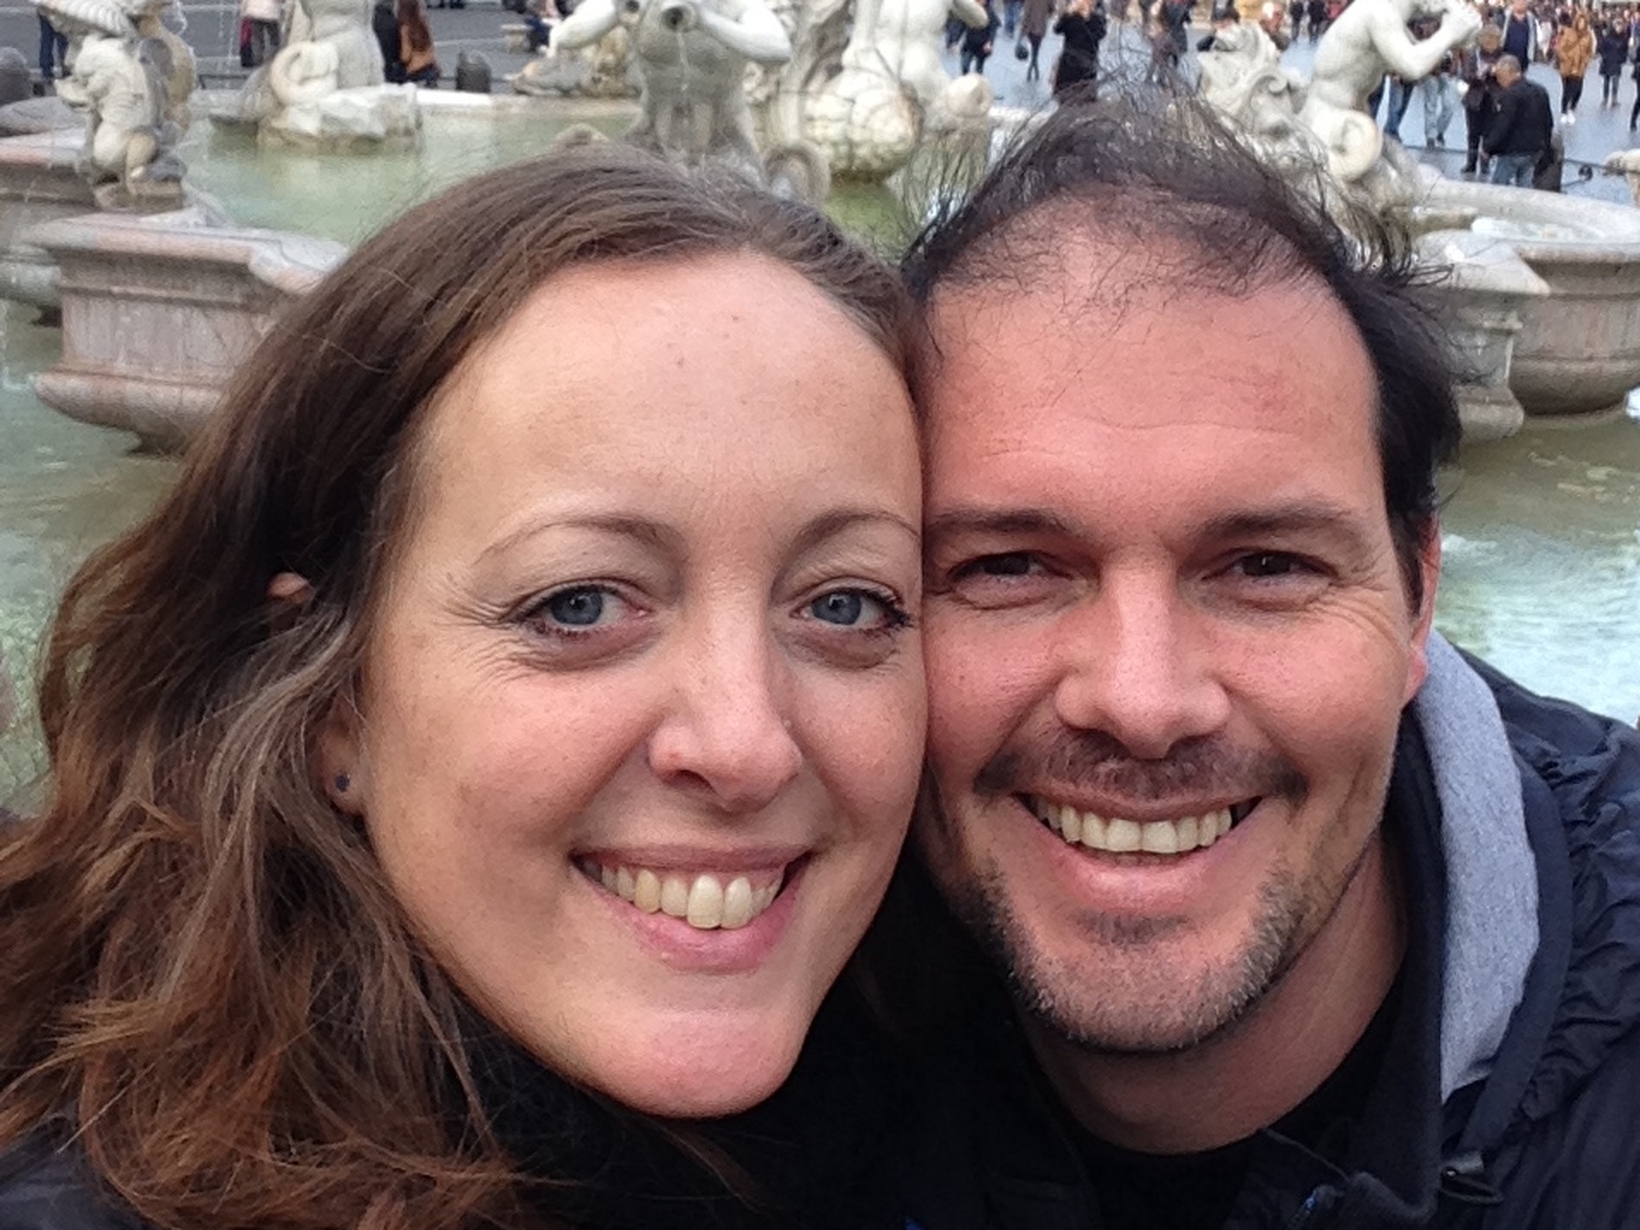 Irene & Tony from Hengelo, Netherlands